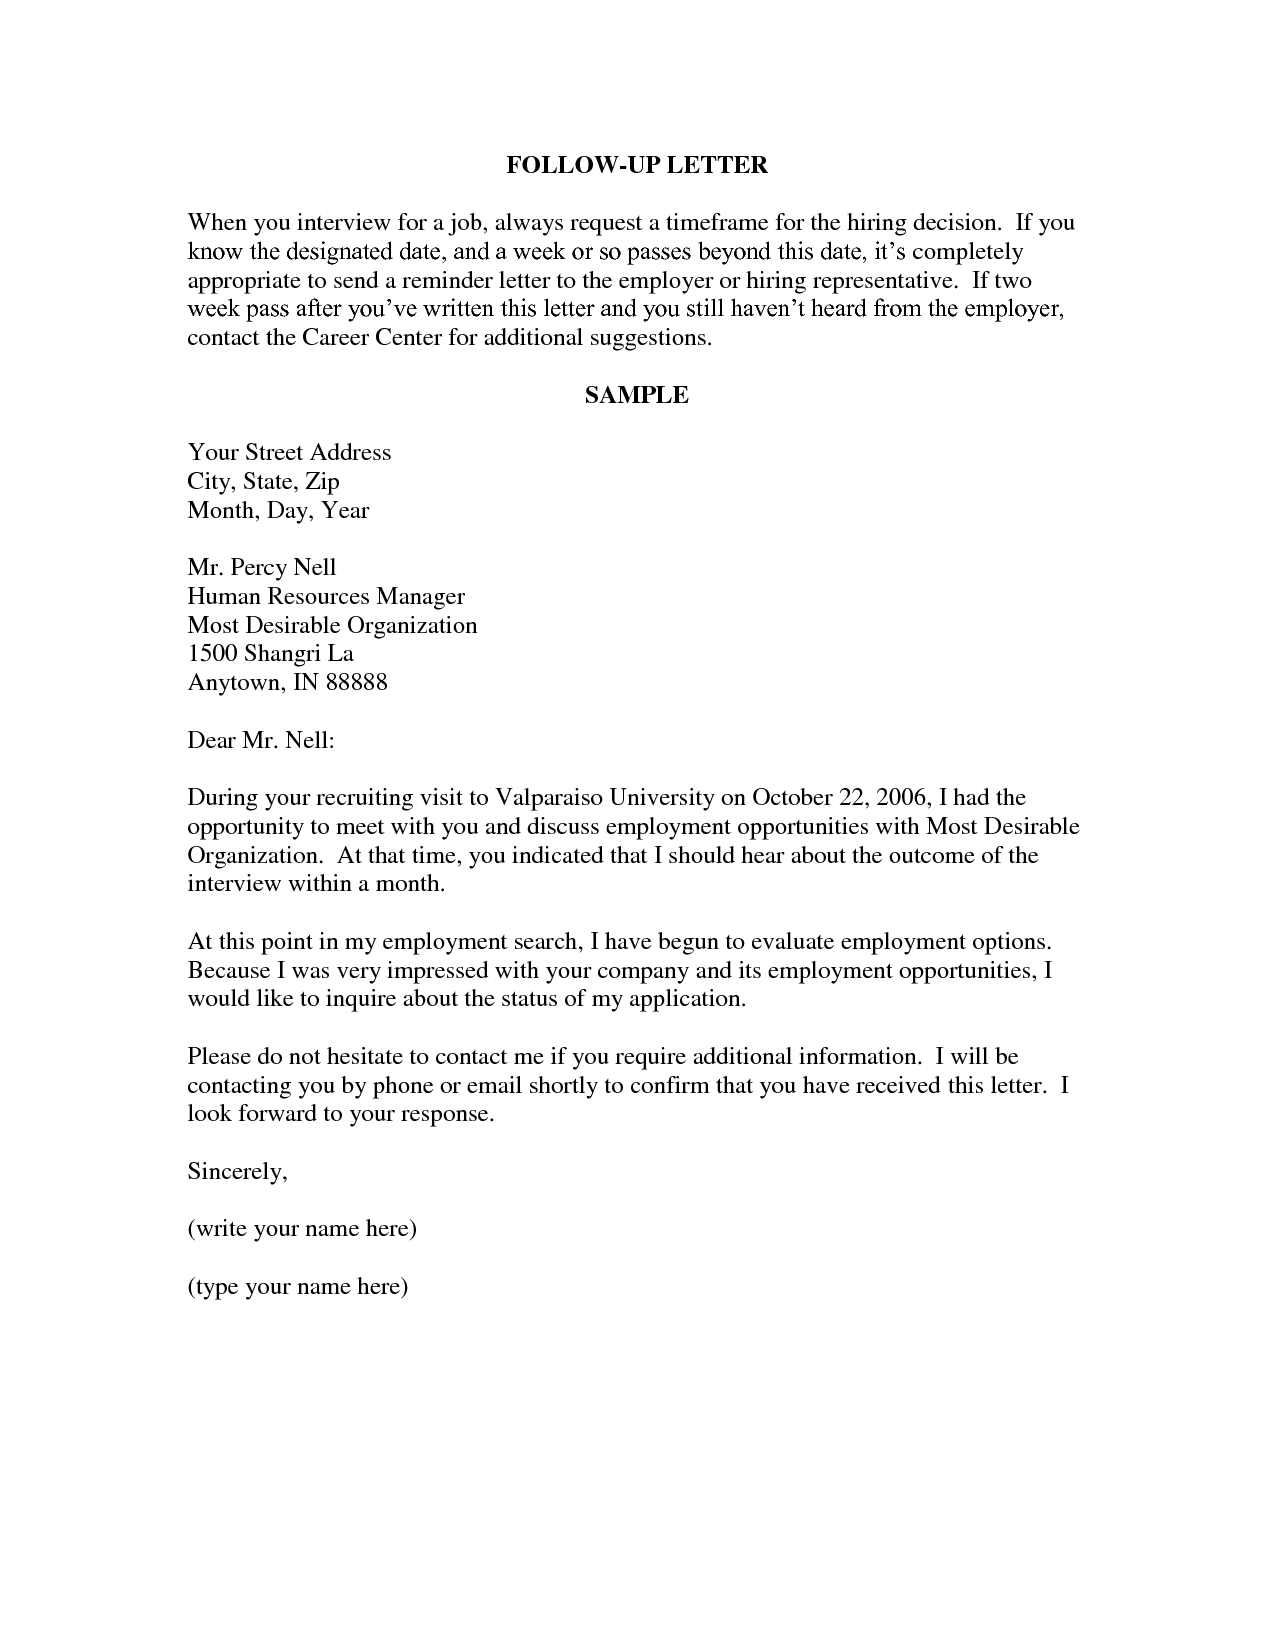 follow up letter after applying apology letter  follow up letter after applying